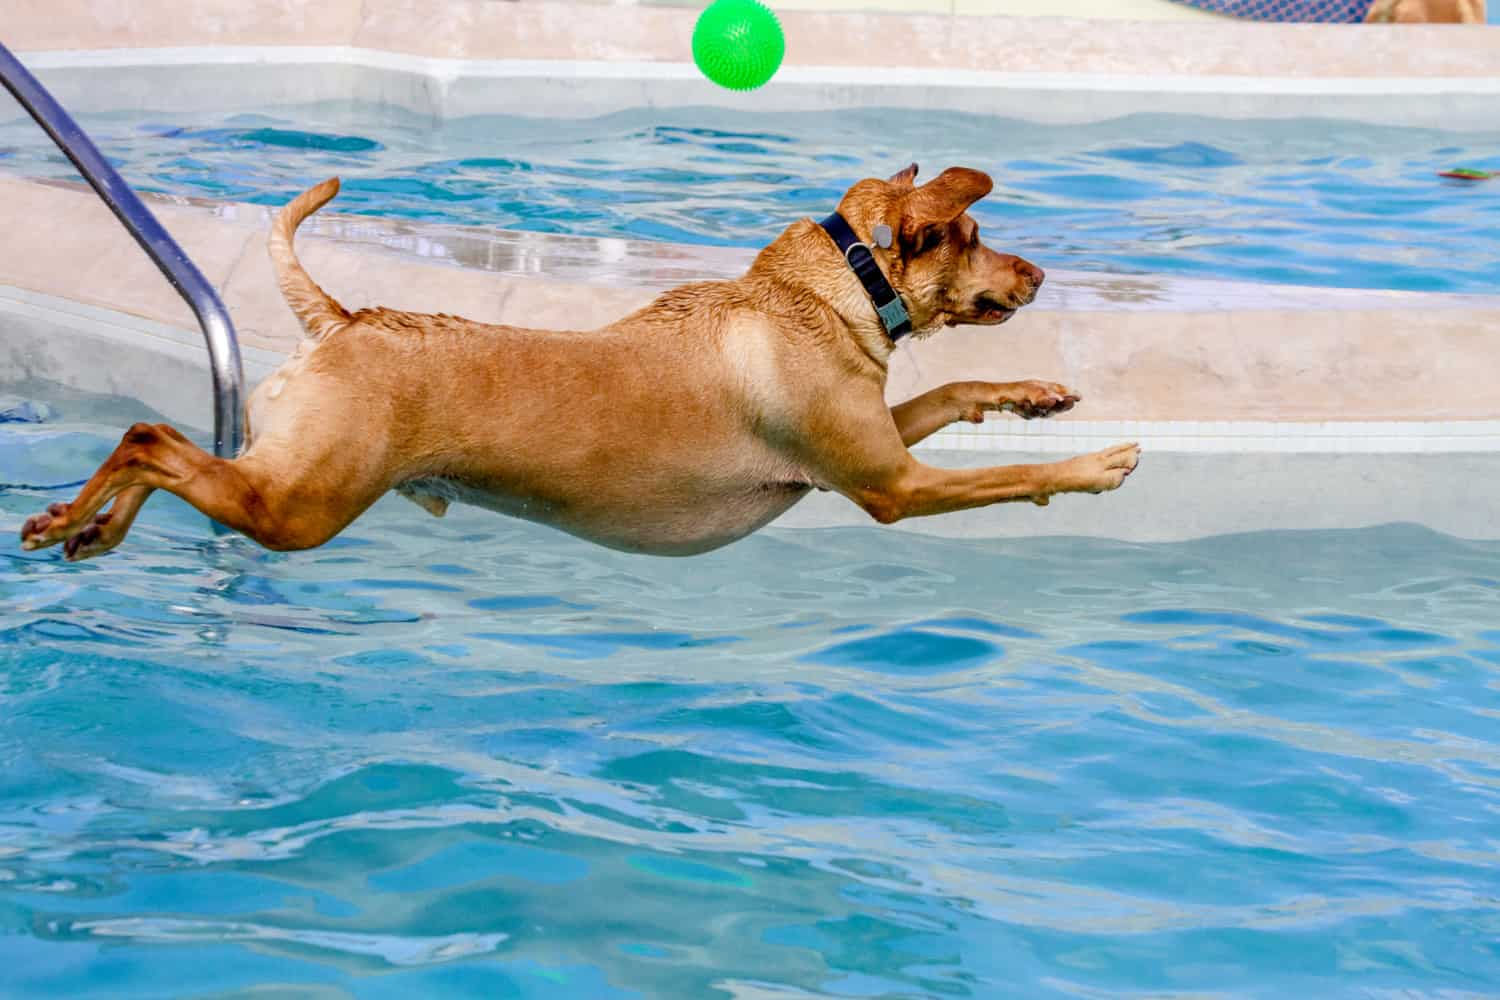 Yellow Labrador Retriever jumping into swimming pool to fetch ball